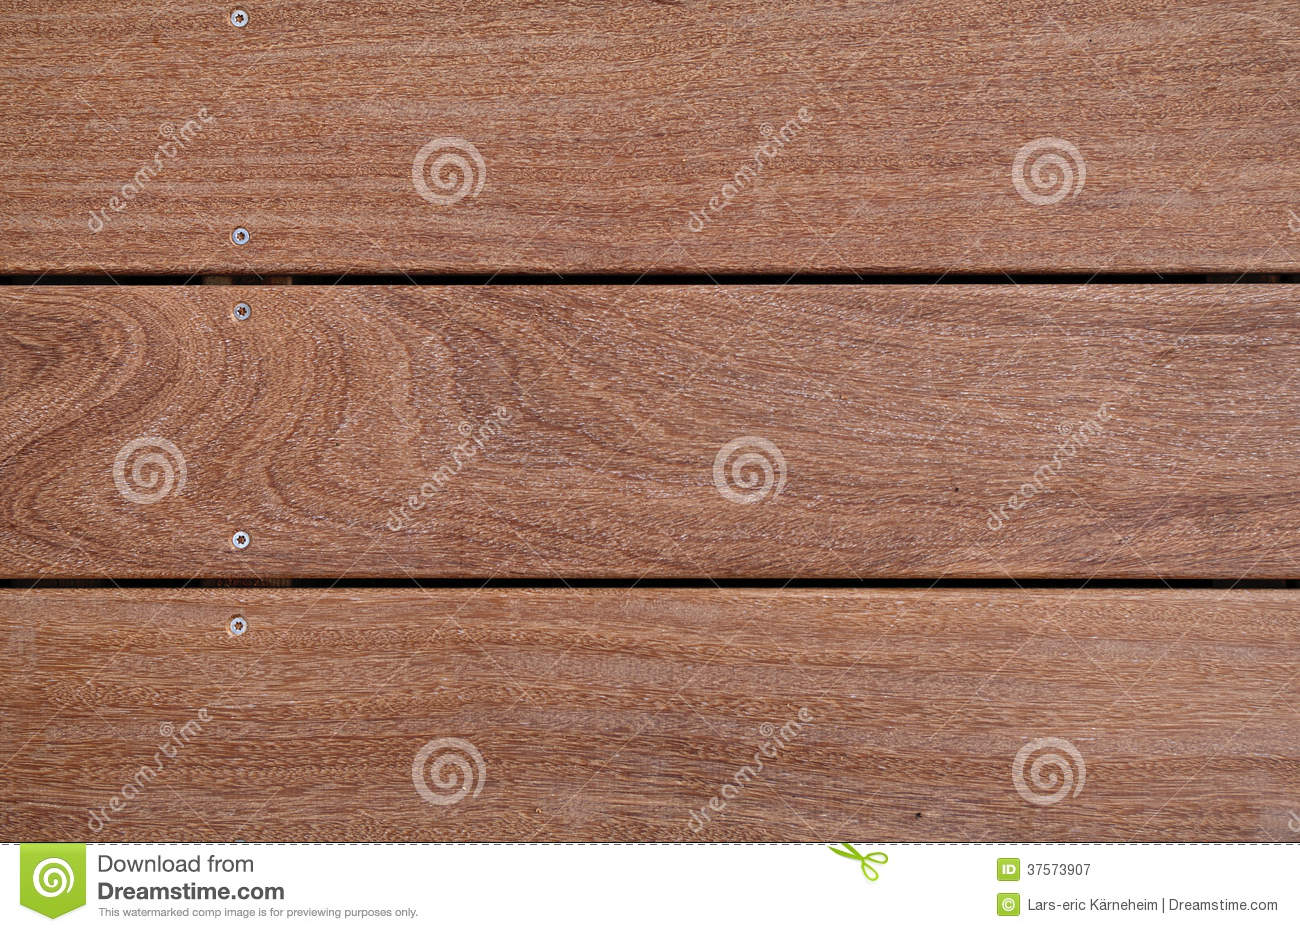 Closeup of cumaru hard wood royalty free stock photography image 37573907 - Suitable materials for decking ...